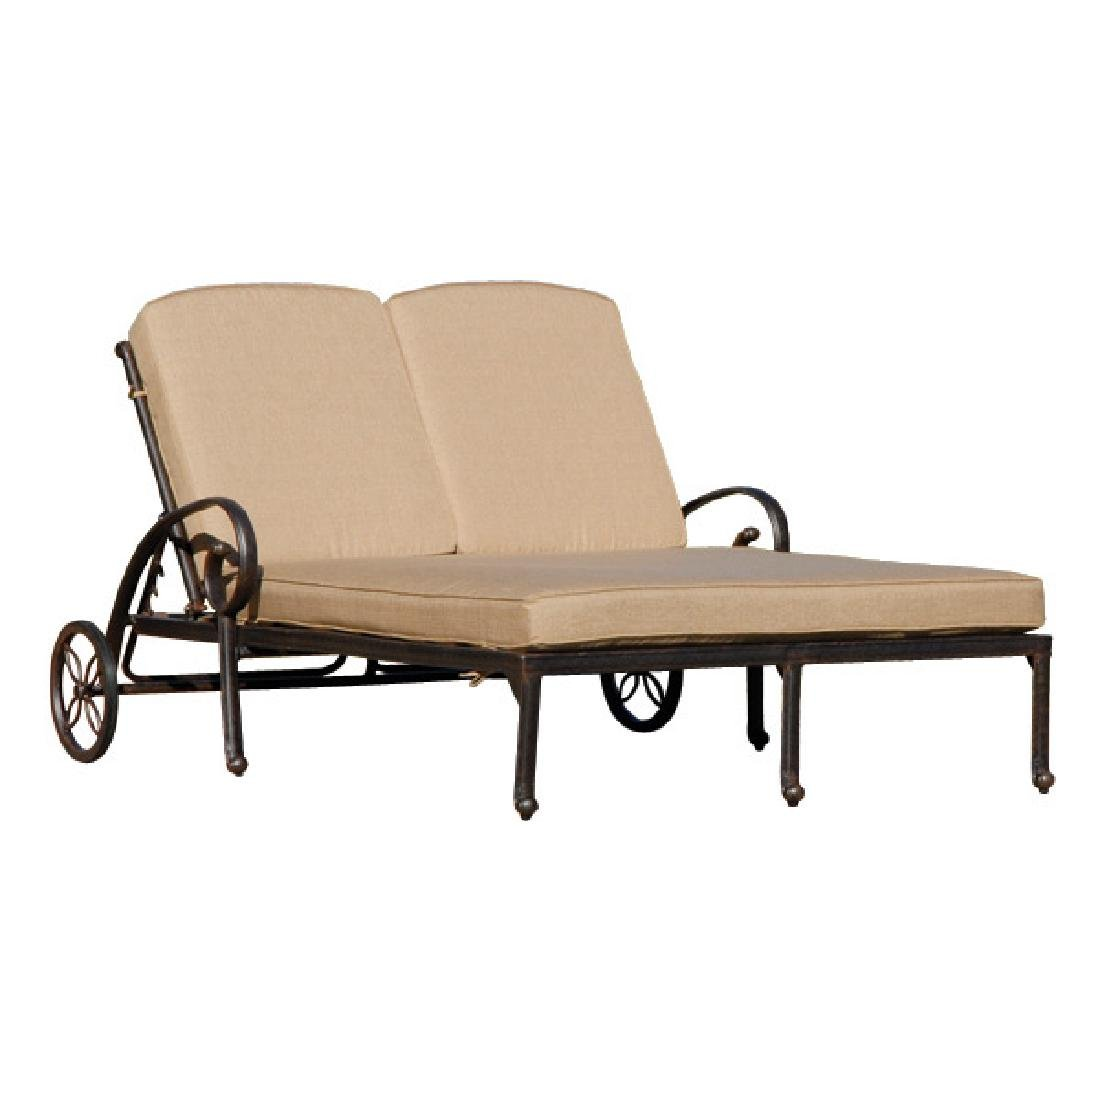 Fiesta Double Chaise Lounge